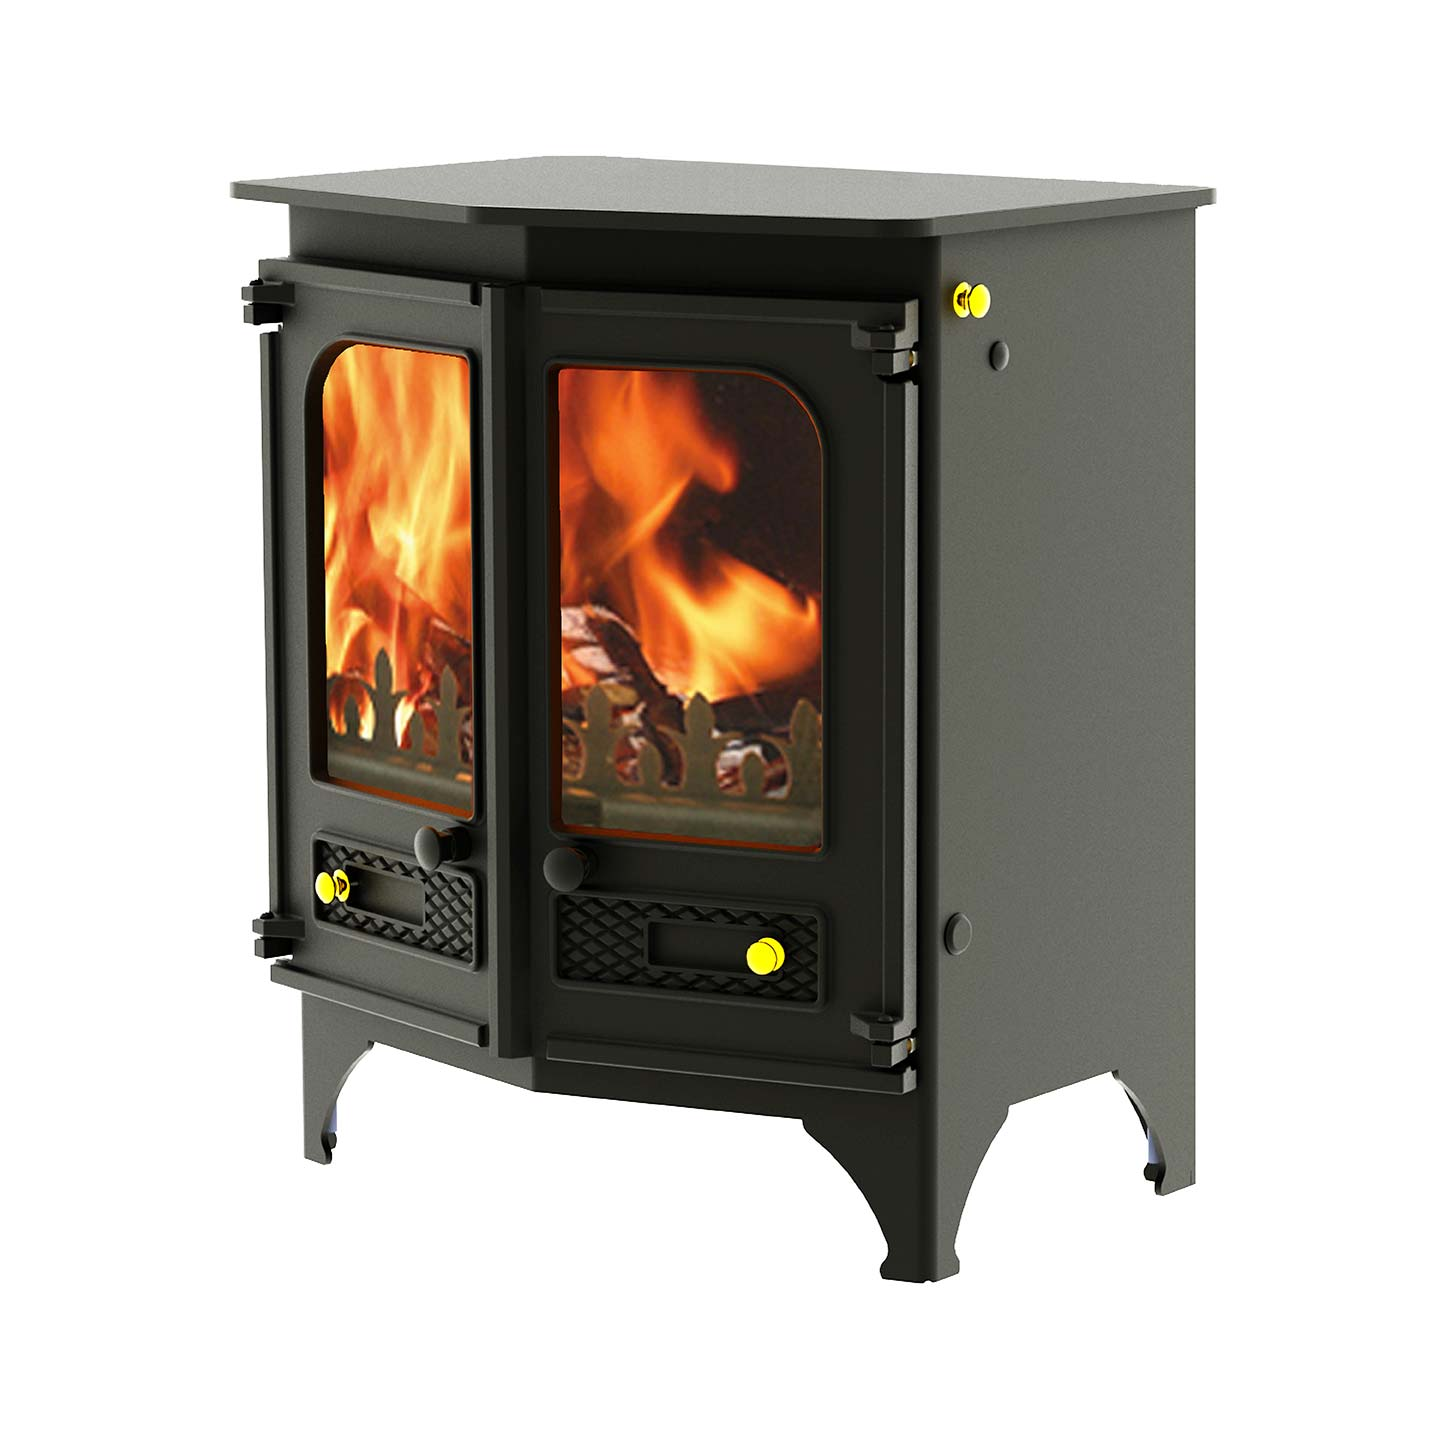 Charnwood Country 6 Multi Fuel Stove The Stove Site